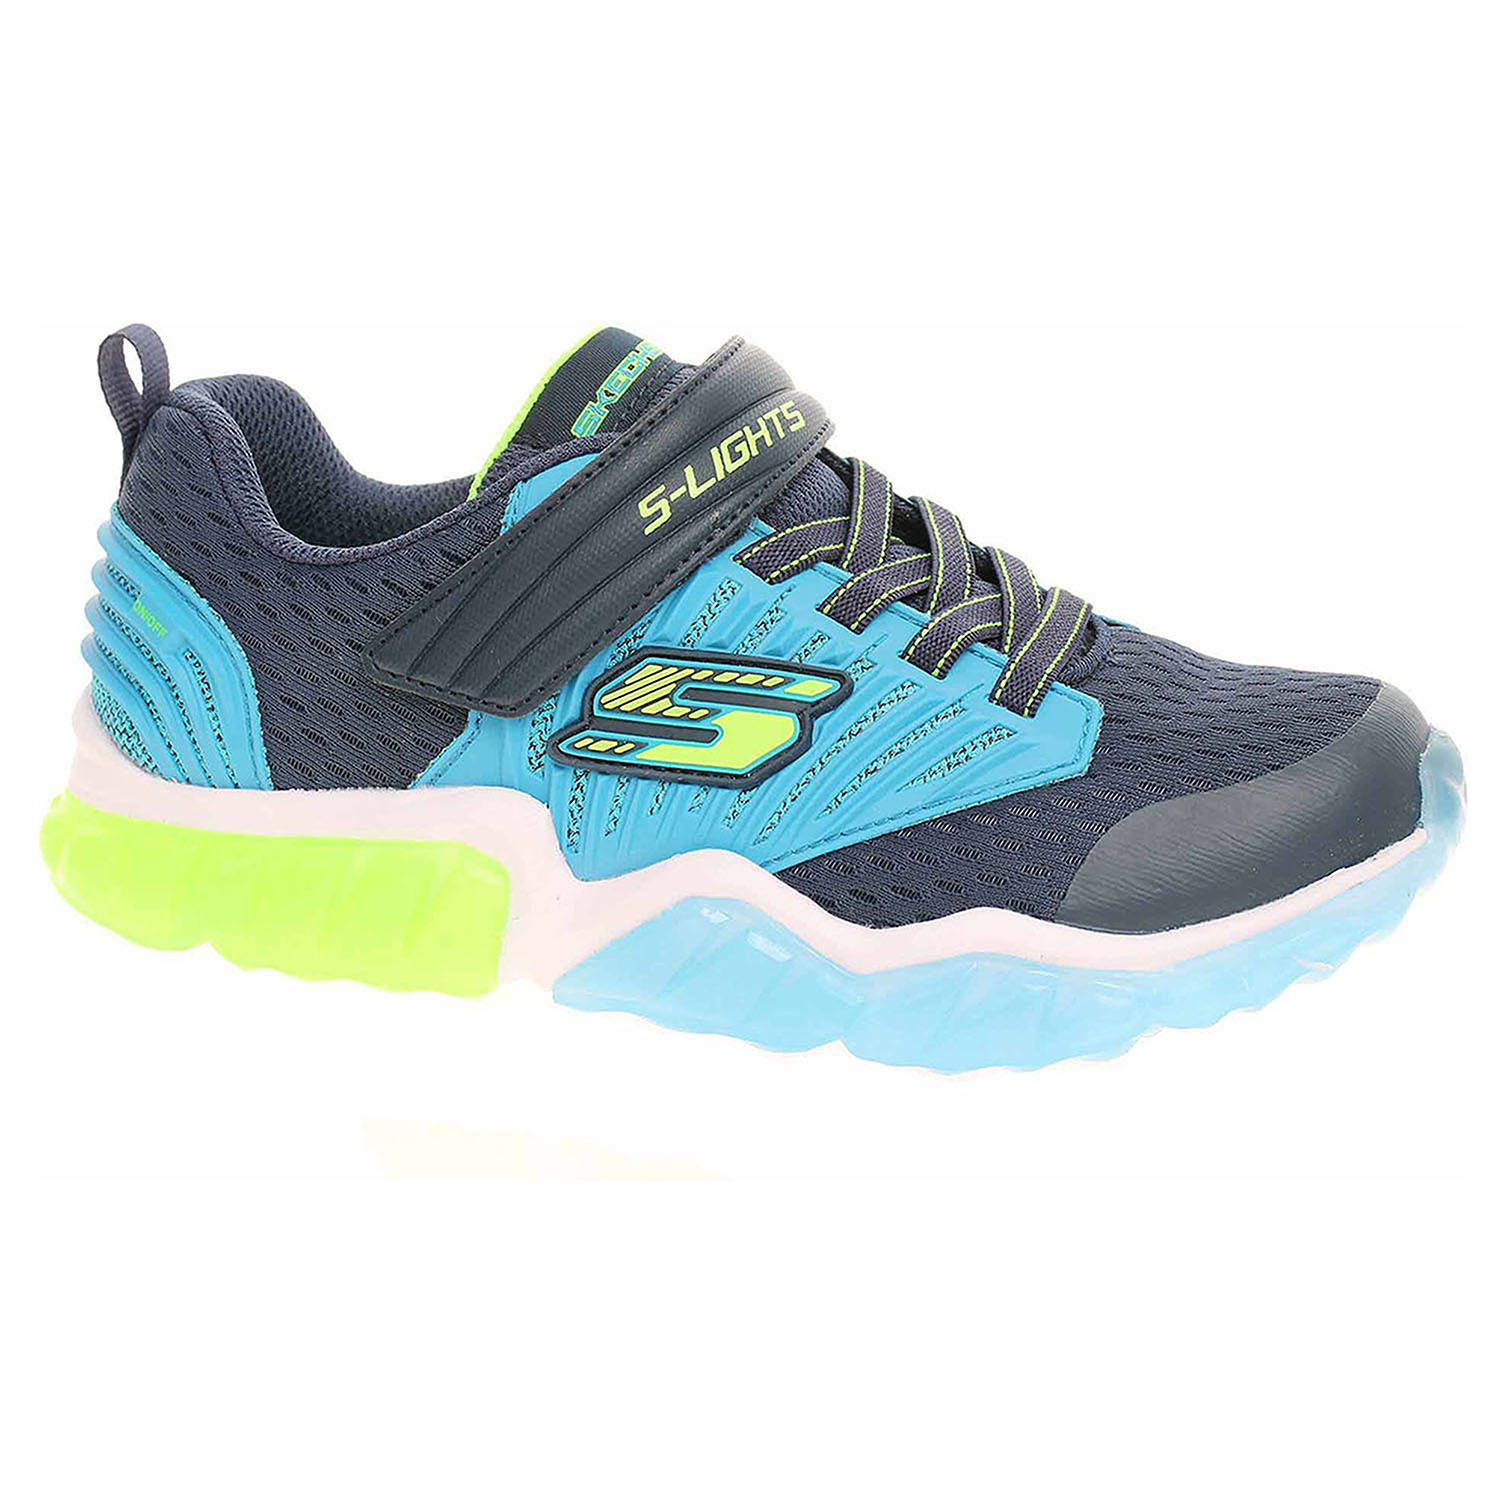 detail Skechers S Lights - Rapid Flash navy-blue